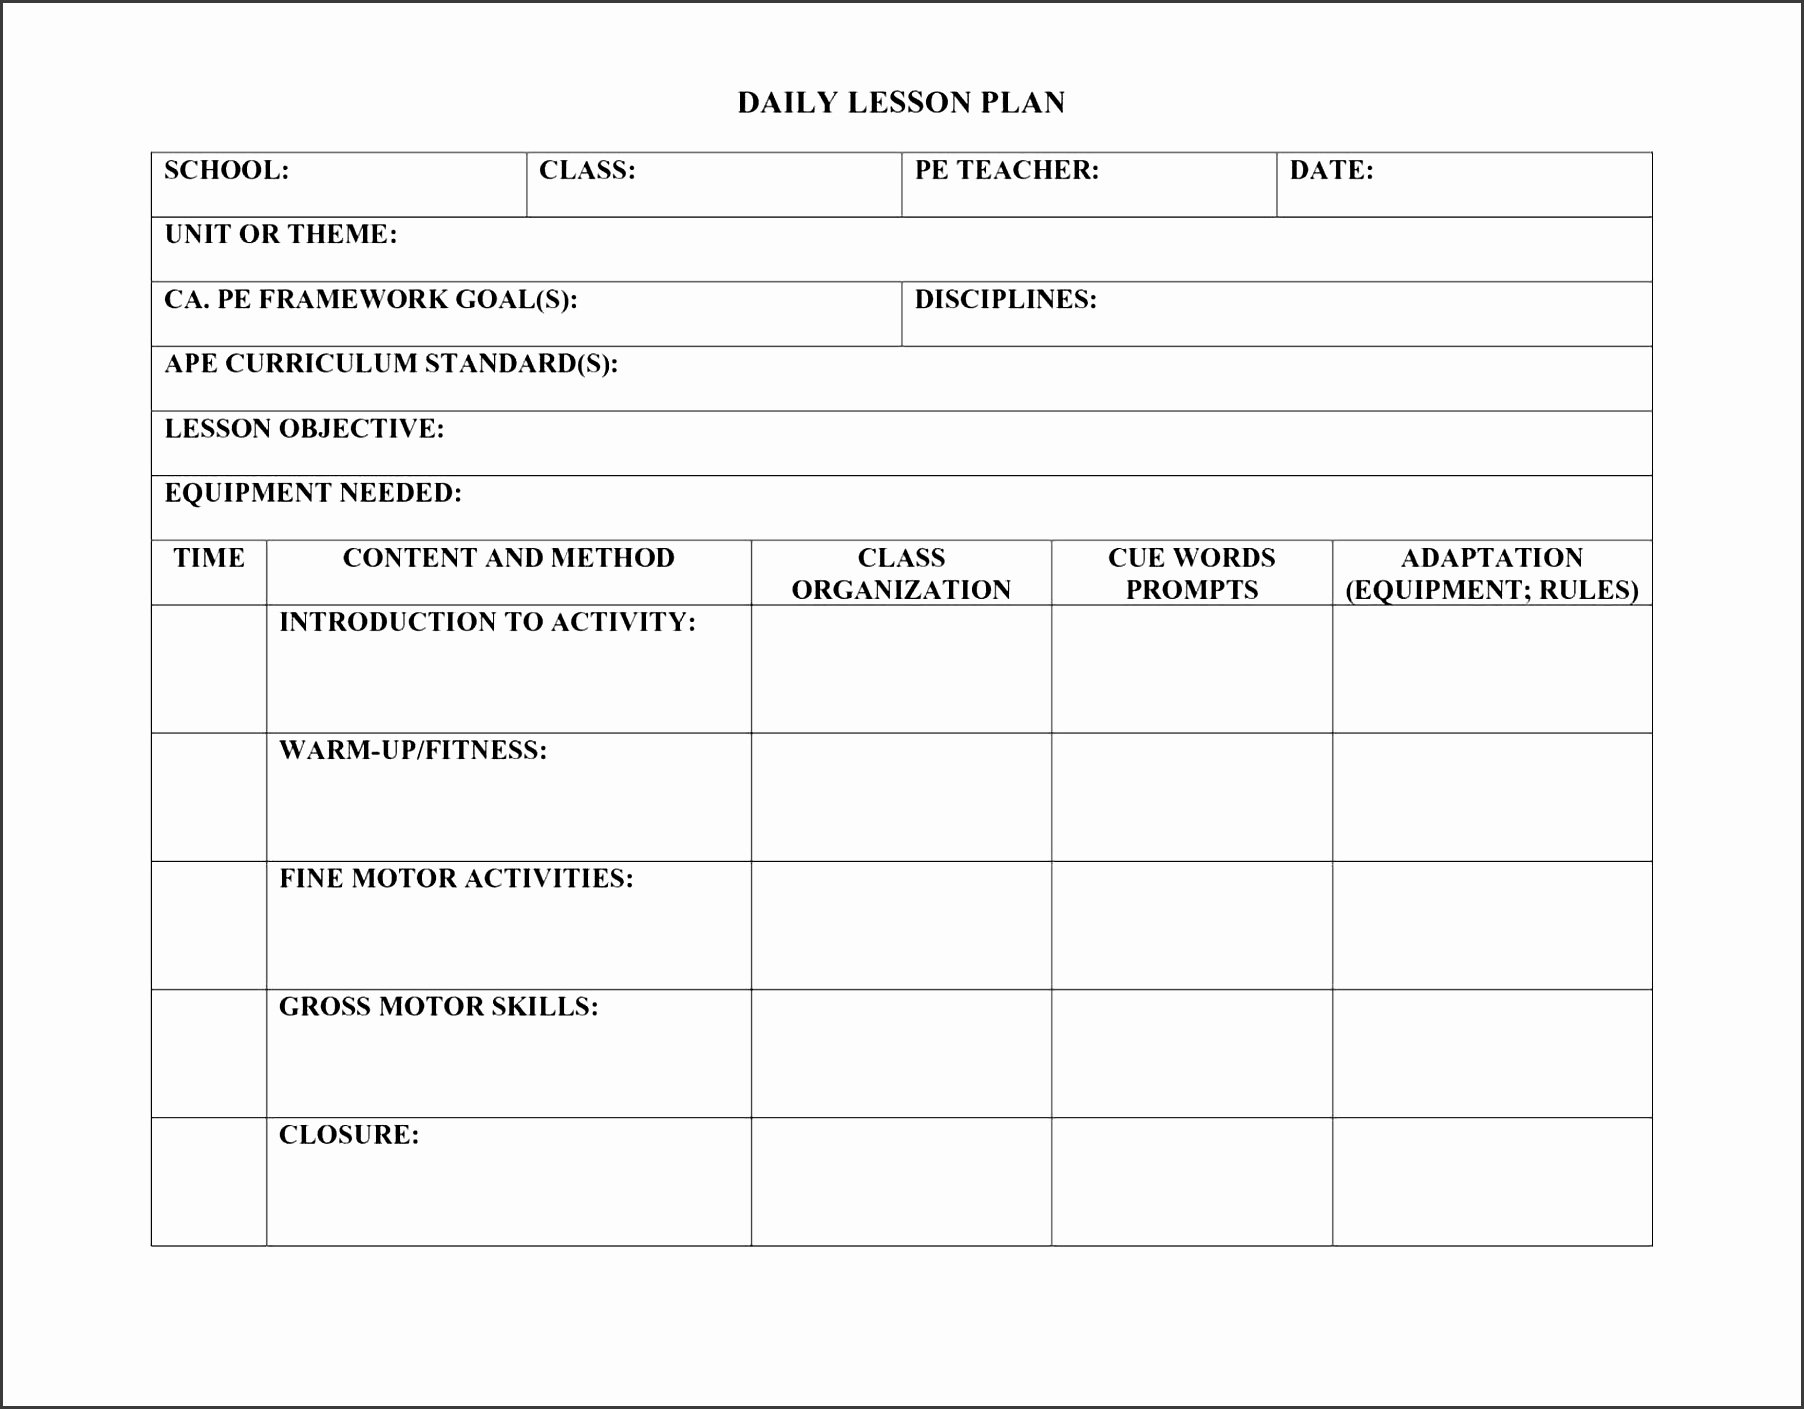 Daily Lesson Plan Template Elegant 5 Daily Lesson Planner for Free Sampletemplatess